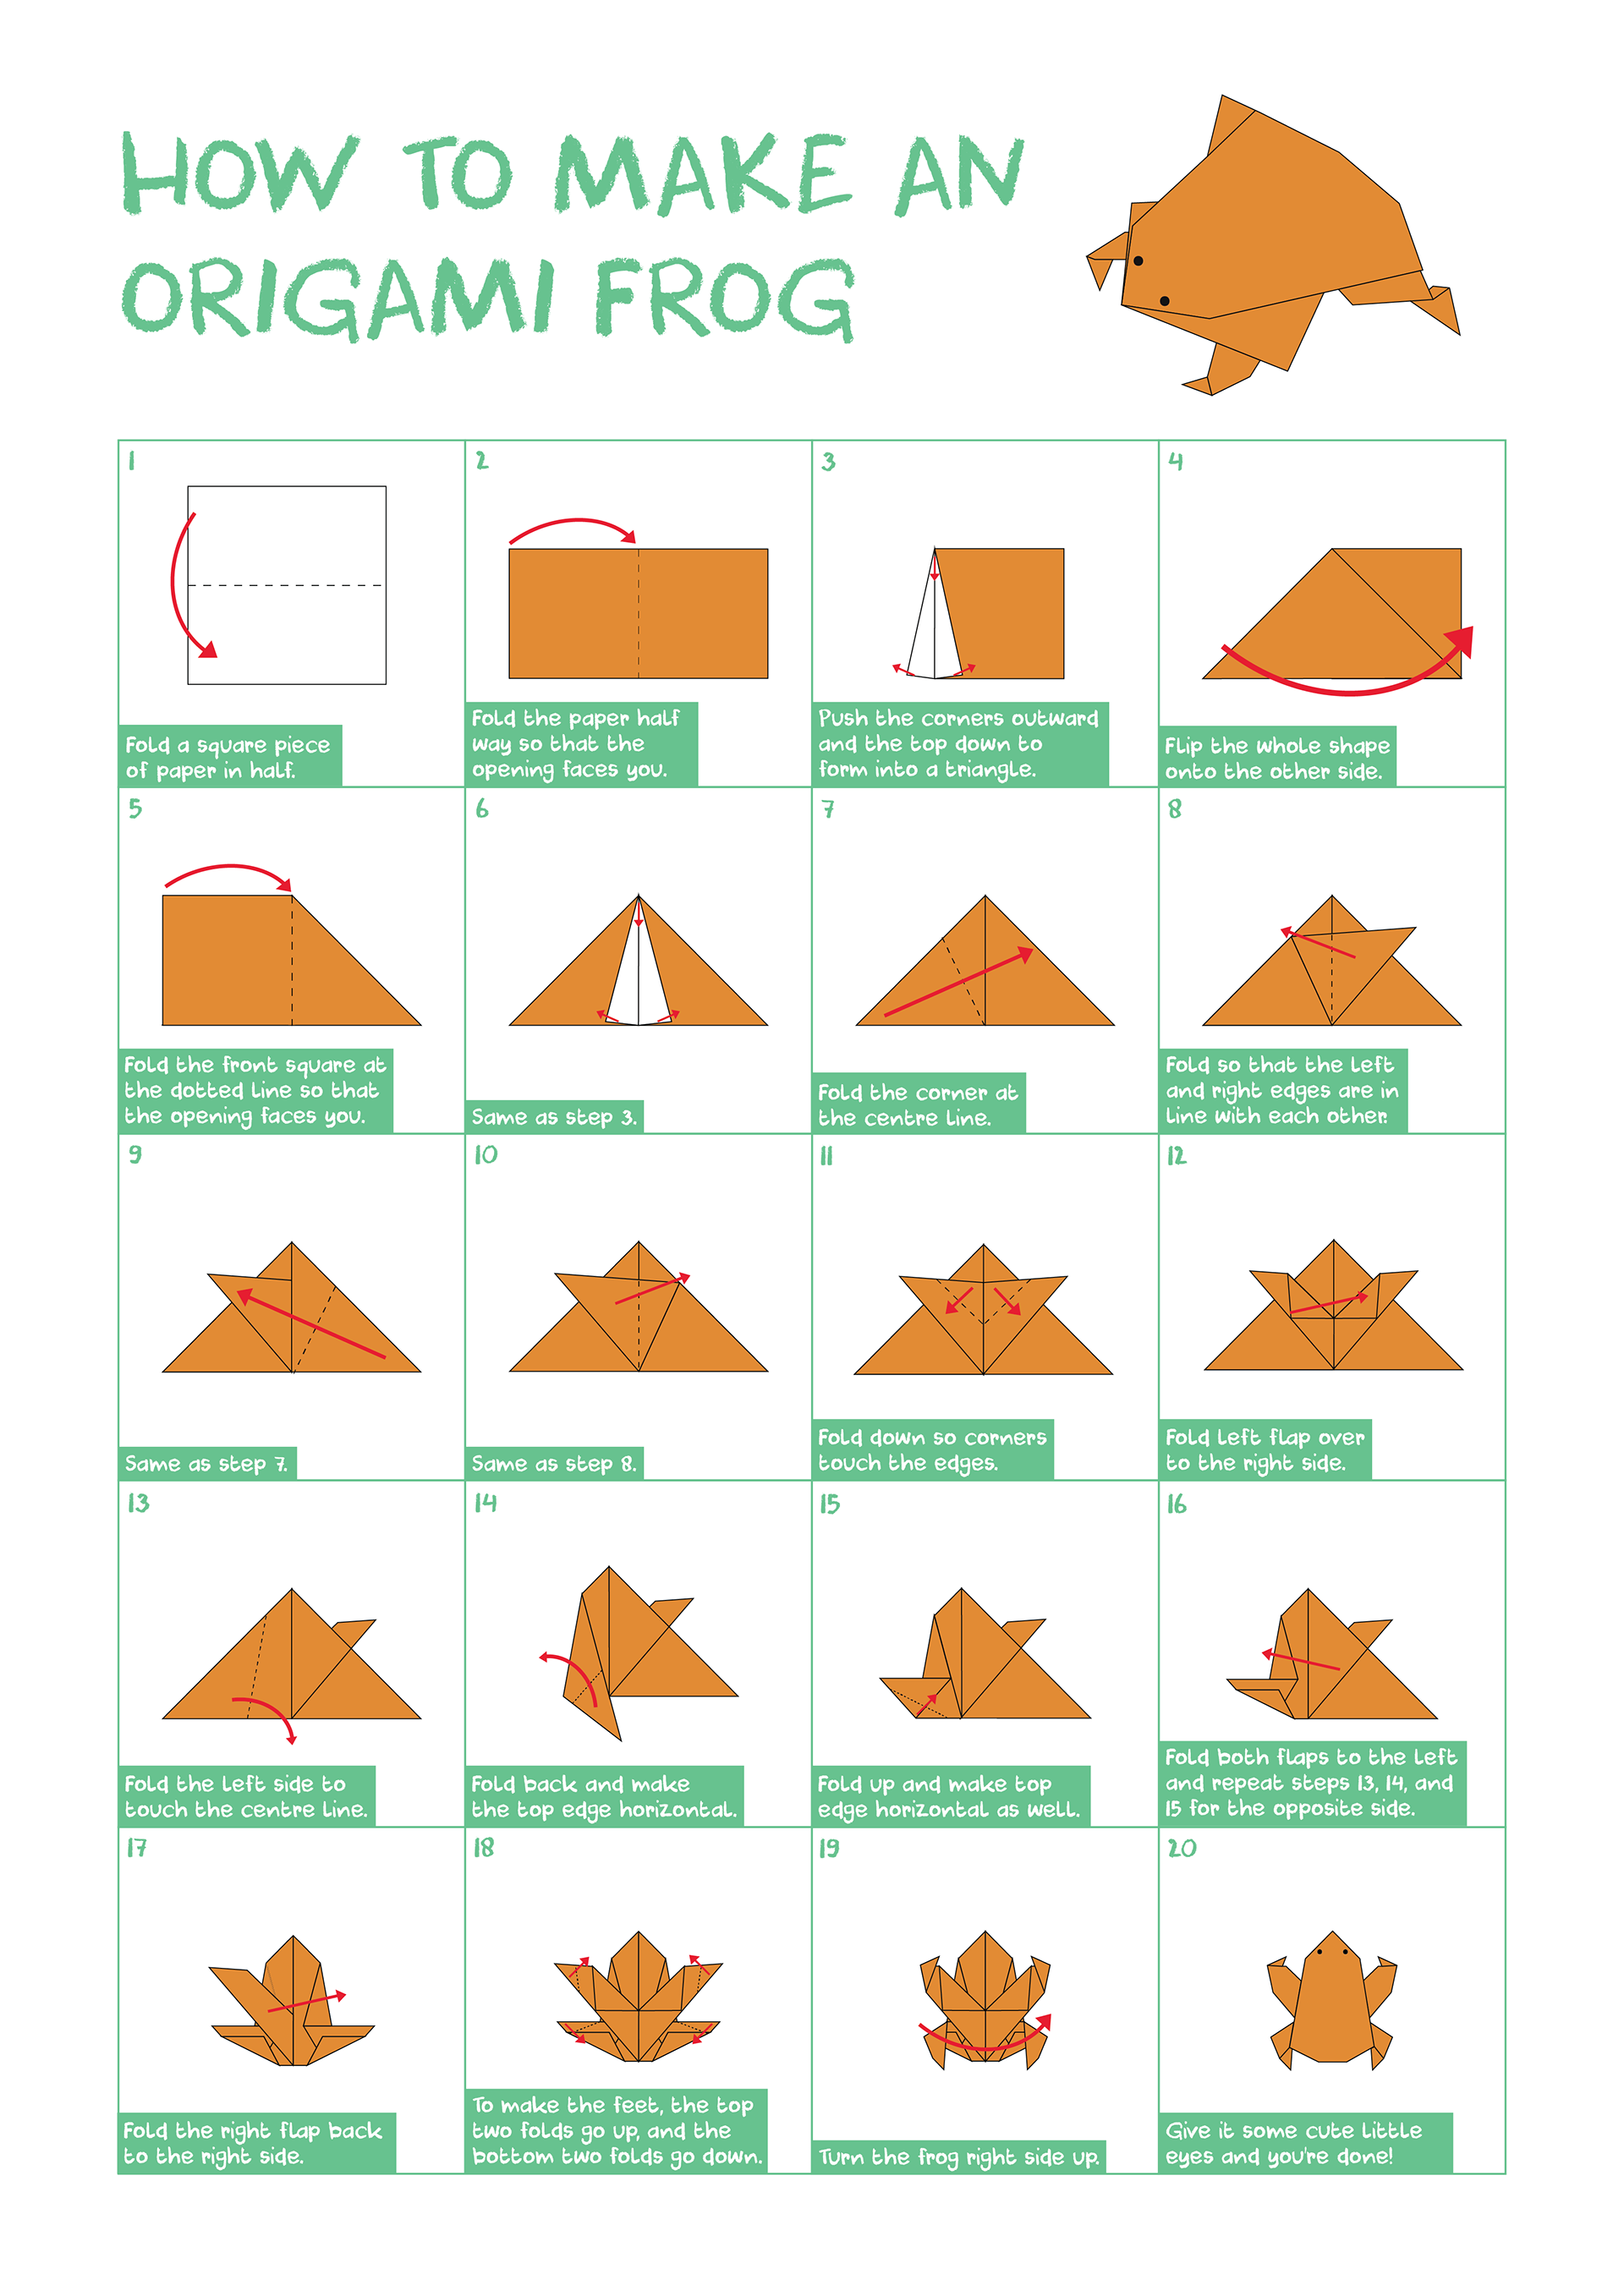 Jake moody origami frog a simple but detailed infographic displaying step by step instructions on how to create an origami frog jeuxipadfo Images